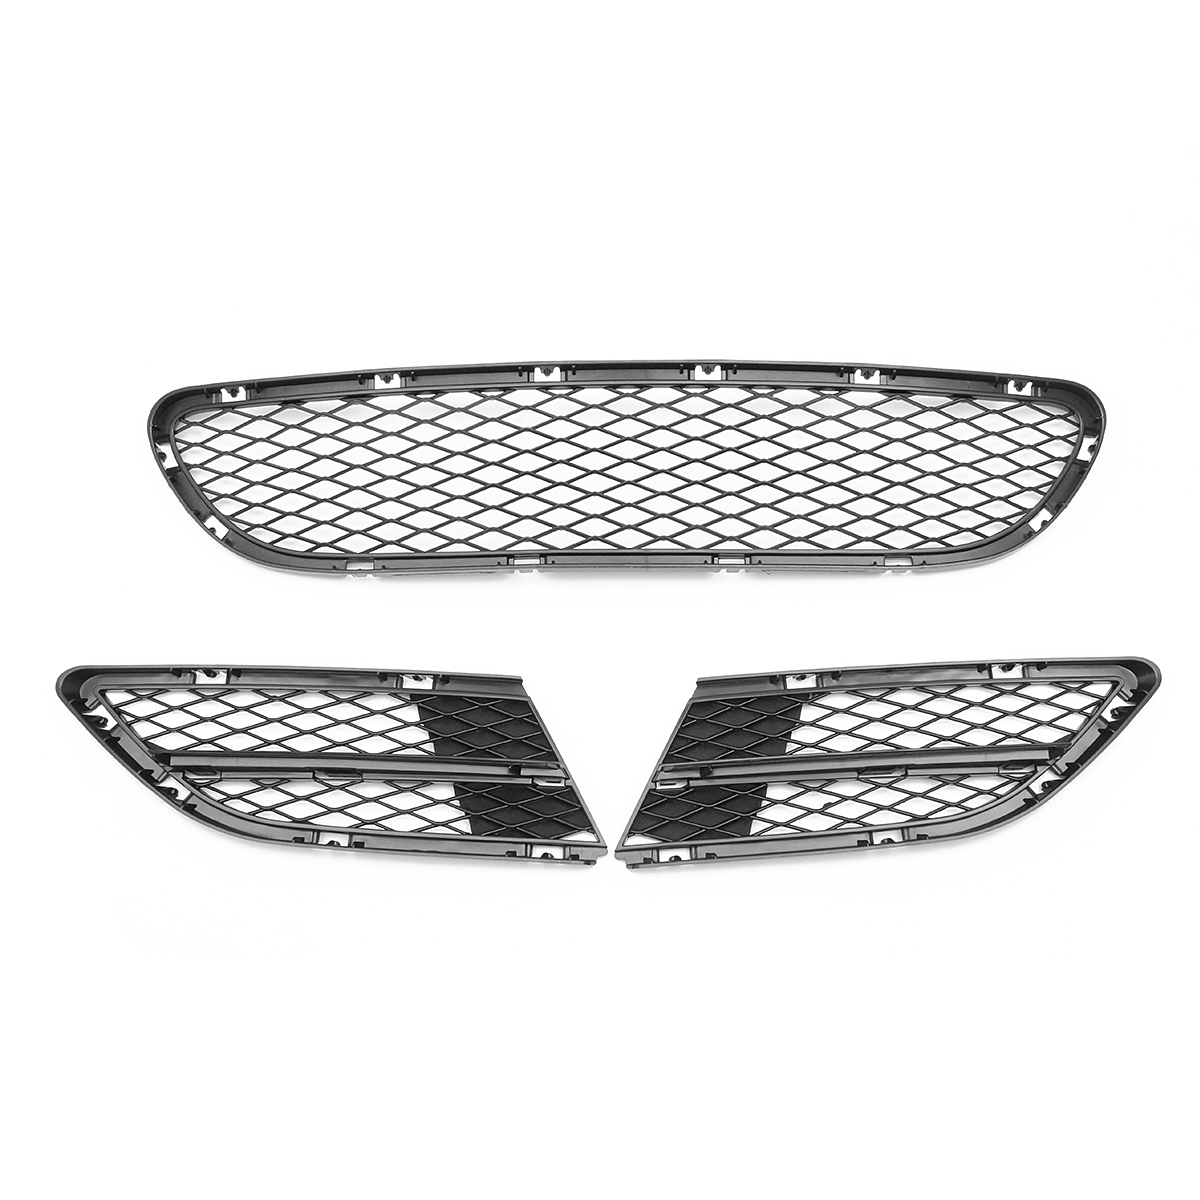 Car Front Lower Bumper Vents Grille Trim Grill Cover Racing Grilles for BMW 3 Series E90 E91 325i 328i 335i